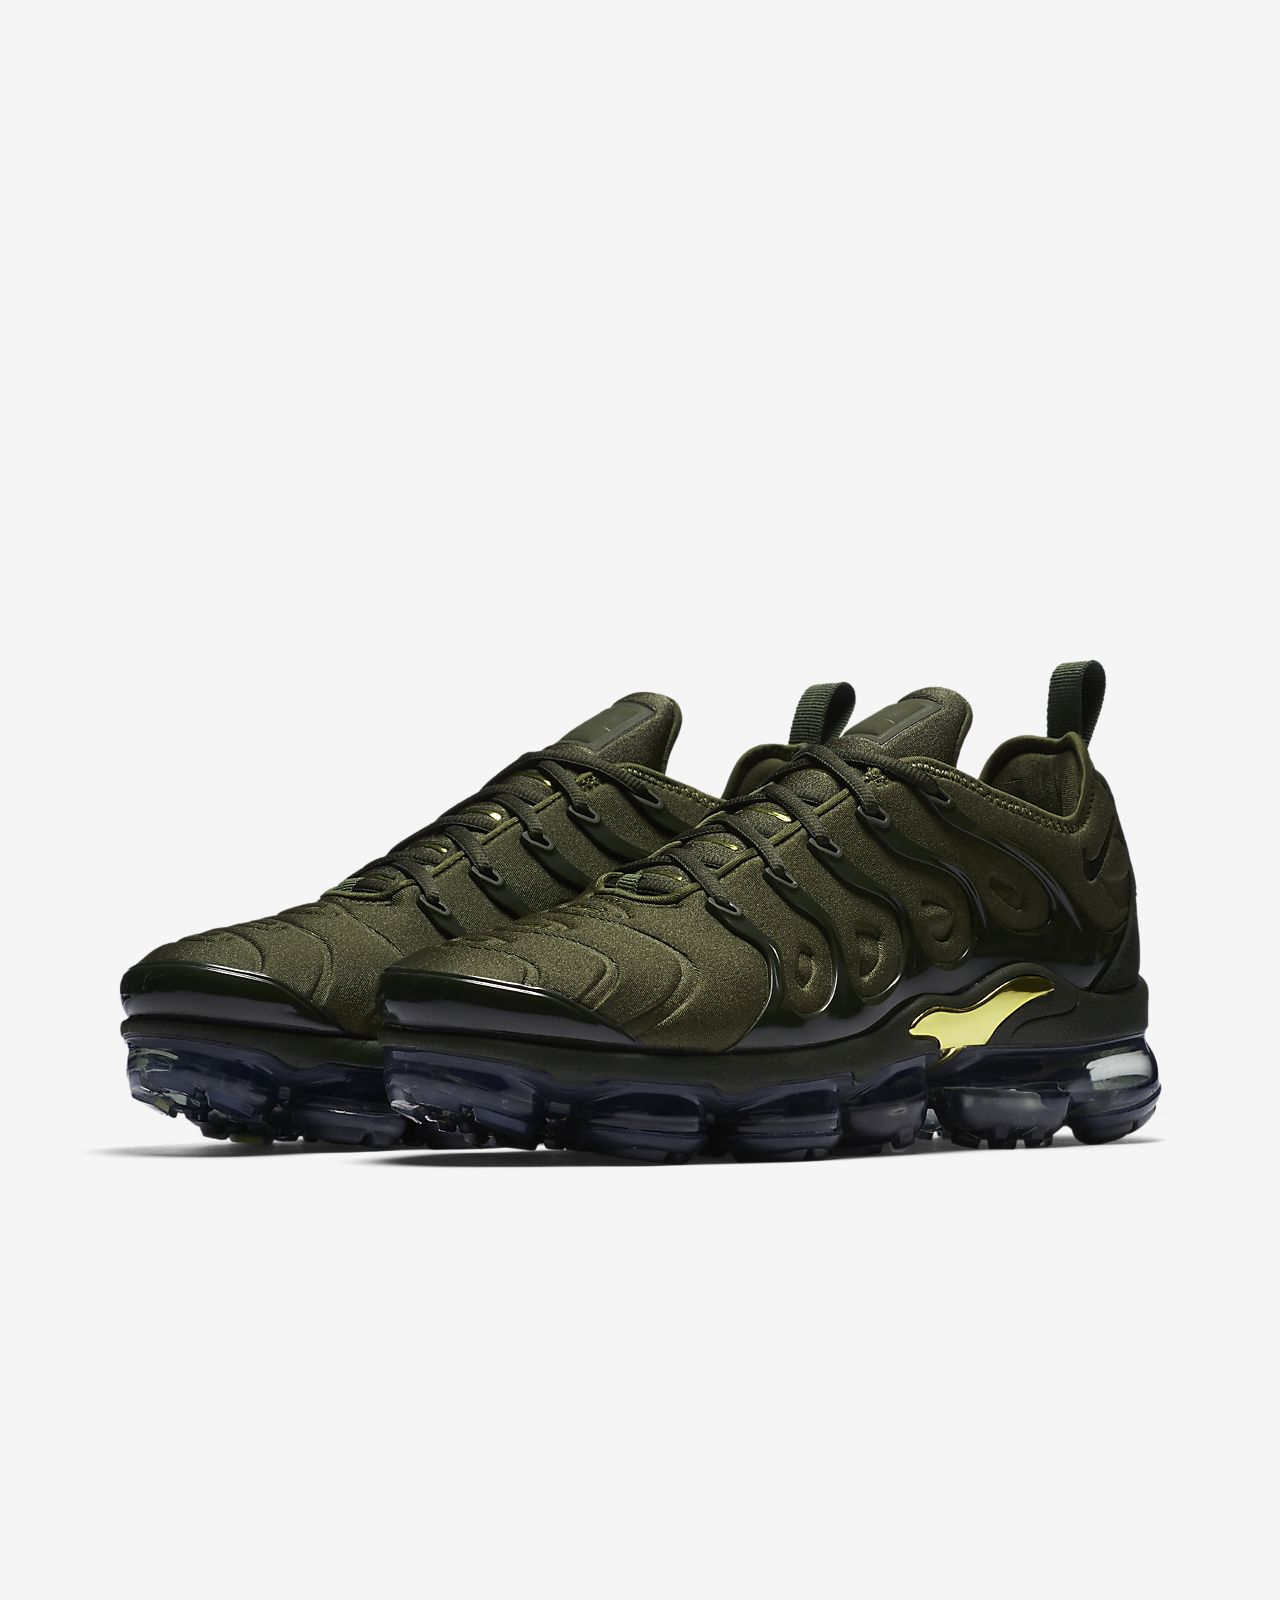 8b4de7d3fe23 Nike Air VaporMax Plus Men s Shoe. Nike.com